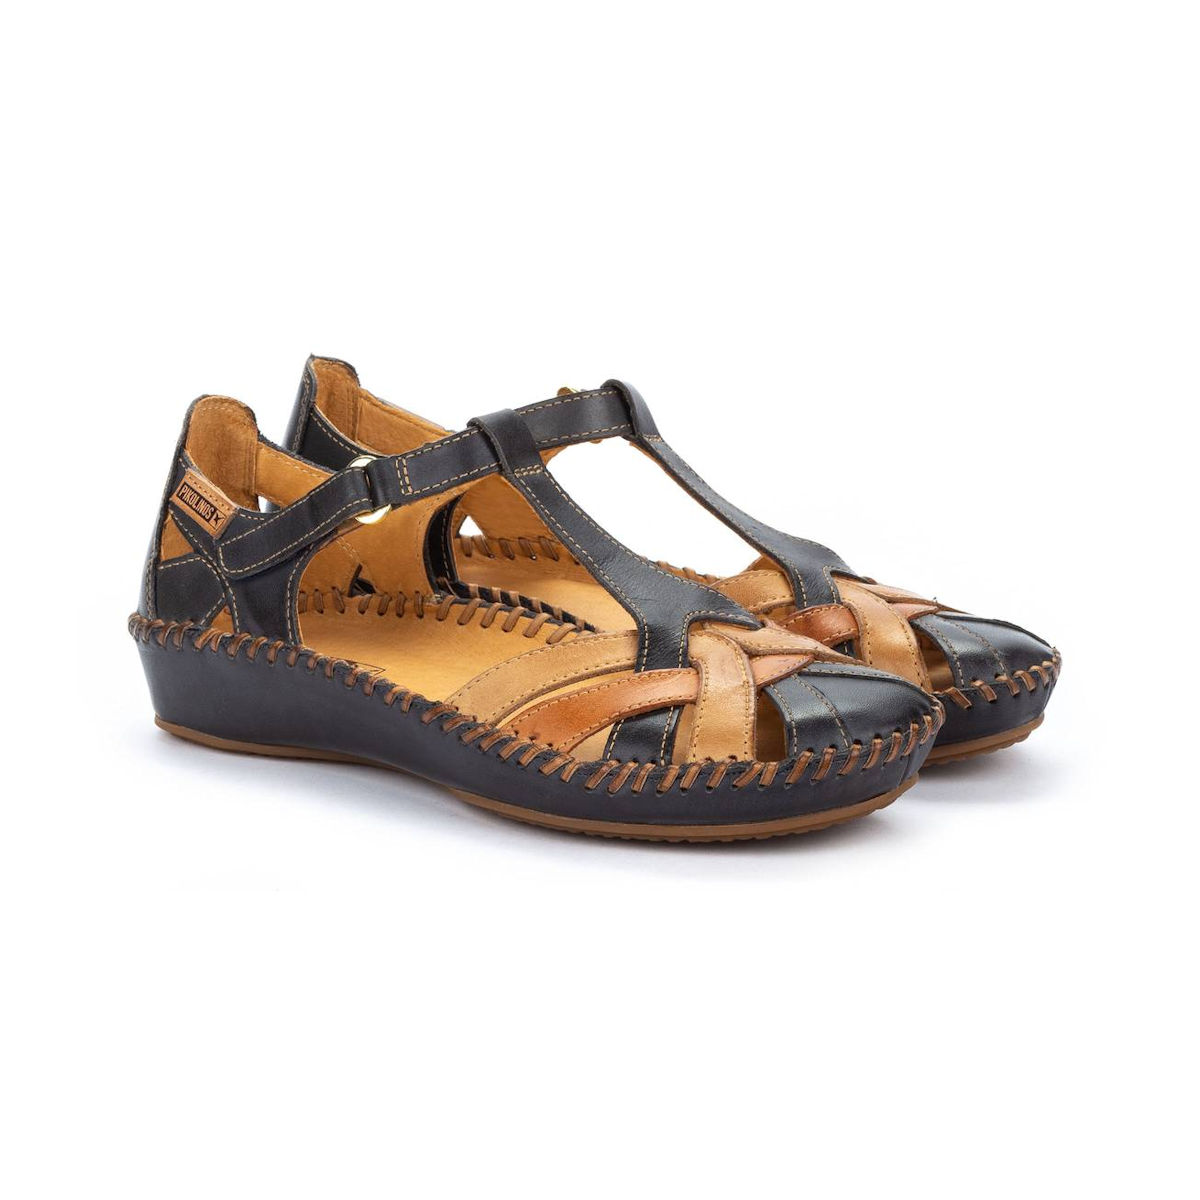 Womens Pikolinos P Valleta Navy/Brandy Closed Toe Sandal